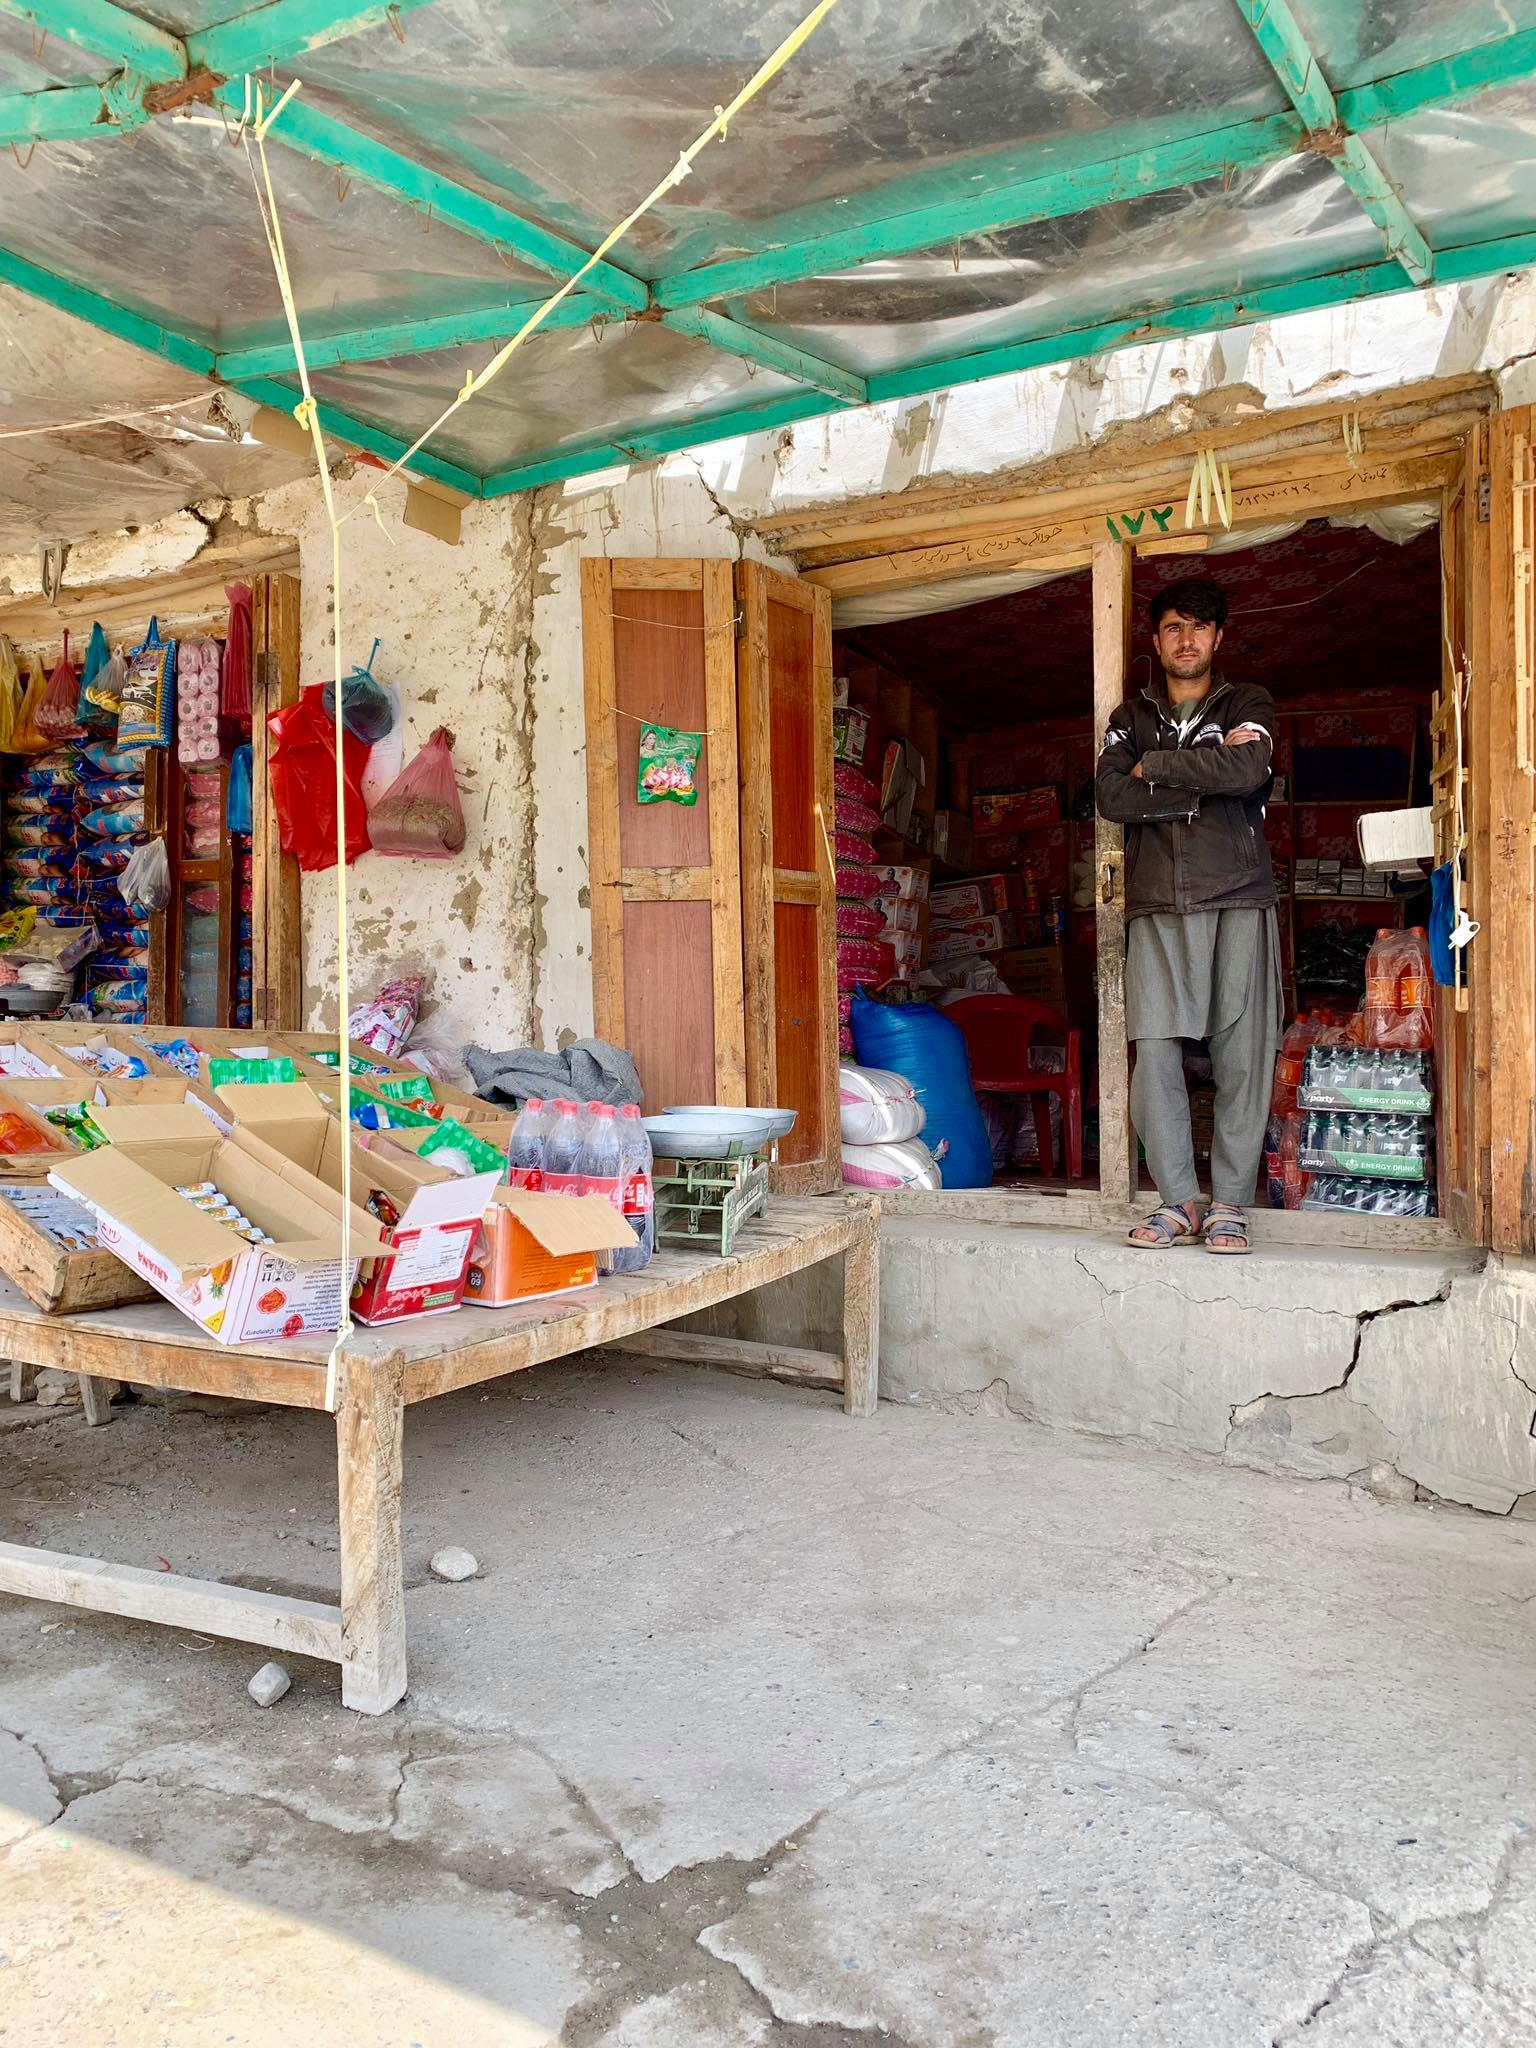 Kach Solo Travels in 2019 AFGHANISTAN, my 127th country13.jpg